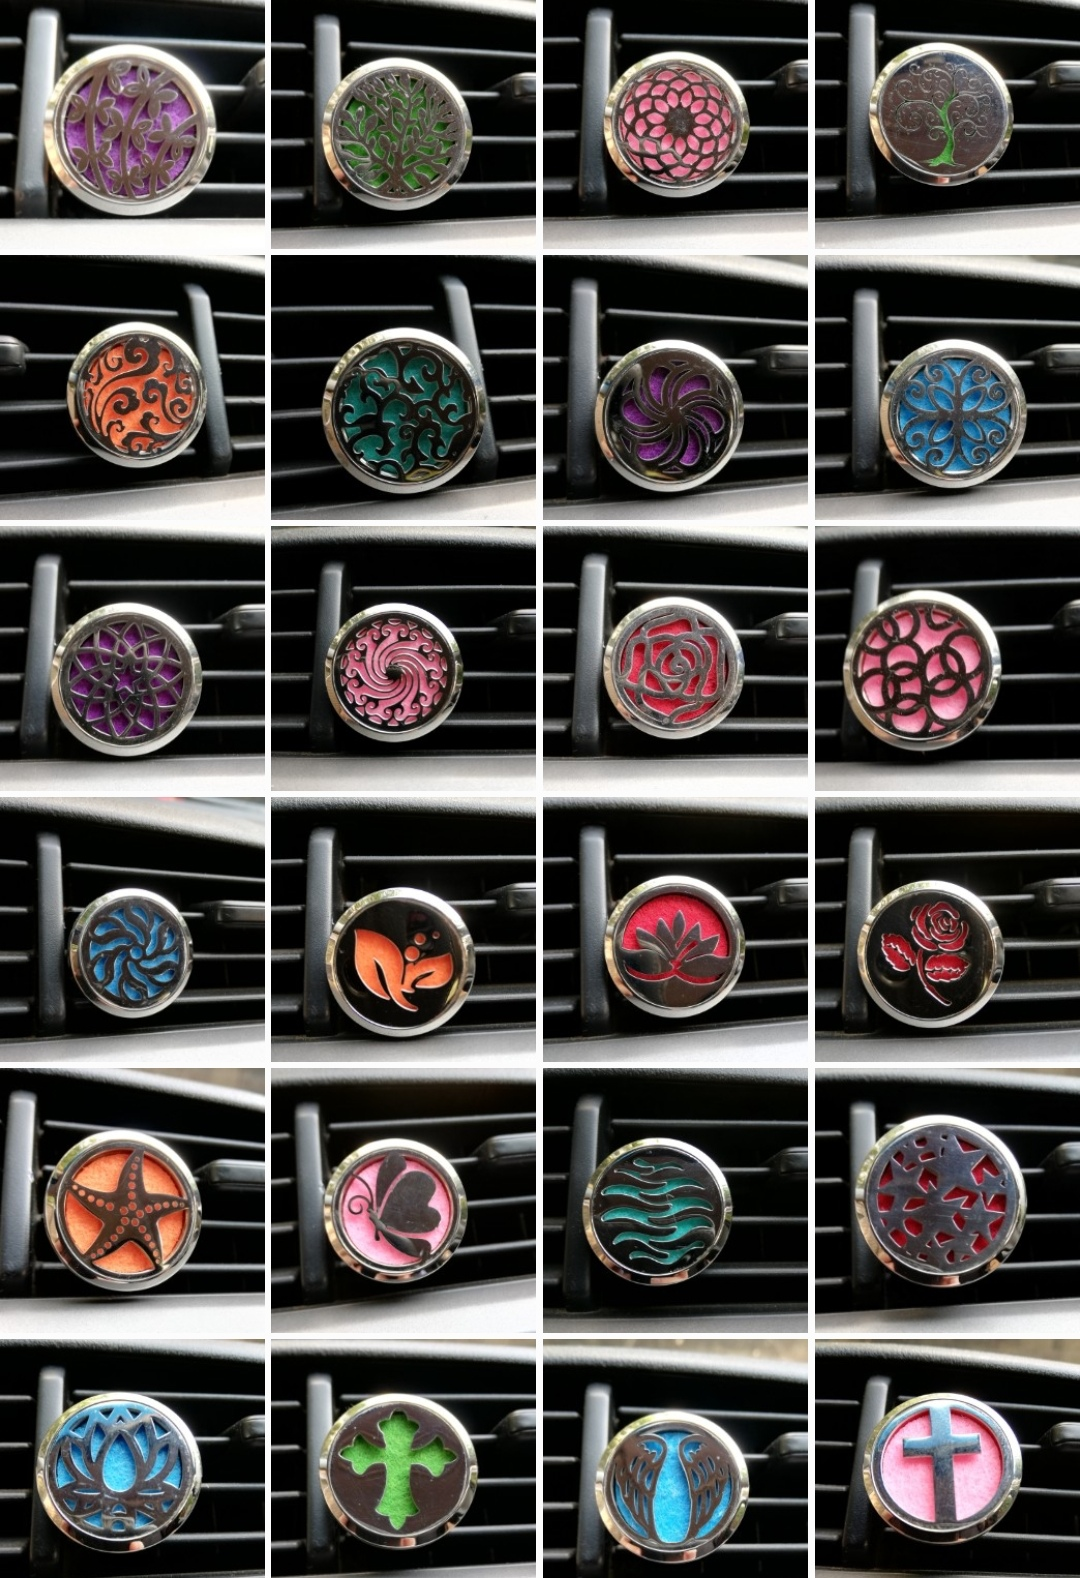 Aromatherapy pendants and car diffusers